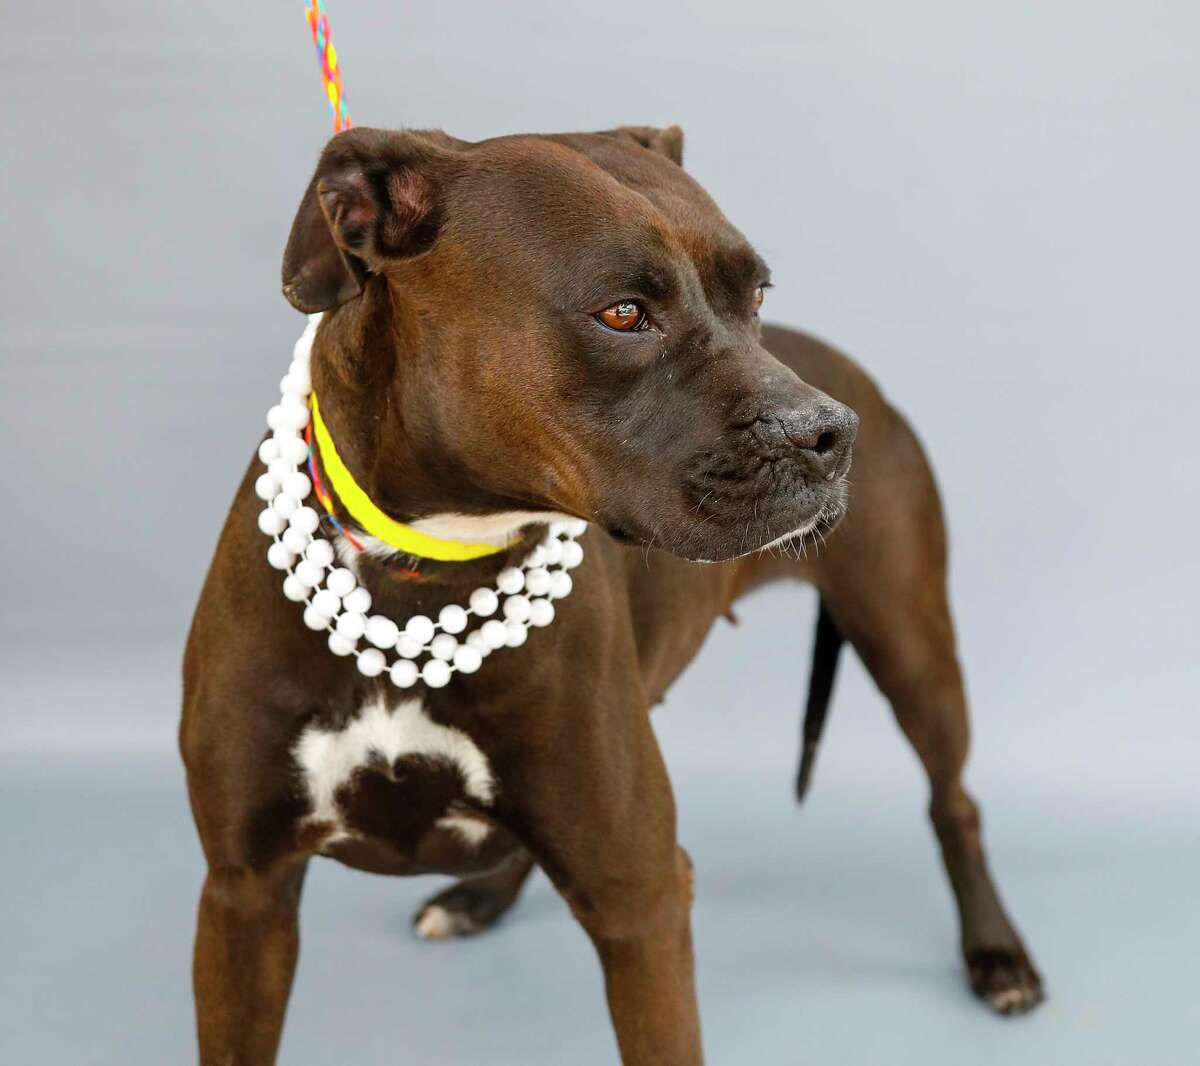 Bebe (A570670) is a 3-year-old, female black Boxer mix available for adoption from Harris County Pets. Photographed Wednesday, April 21, 2021, in Houston. Bebe was surrendered by her owner and has been in the shelter for nearly a month. She would be best suited in a house without other dogs, but loves men and women, and may need a refresher course in obedience. She is a sweet girl and the shelter has waived her adoption fee, so she is free.